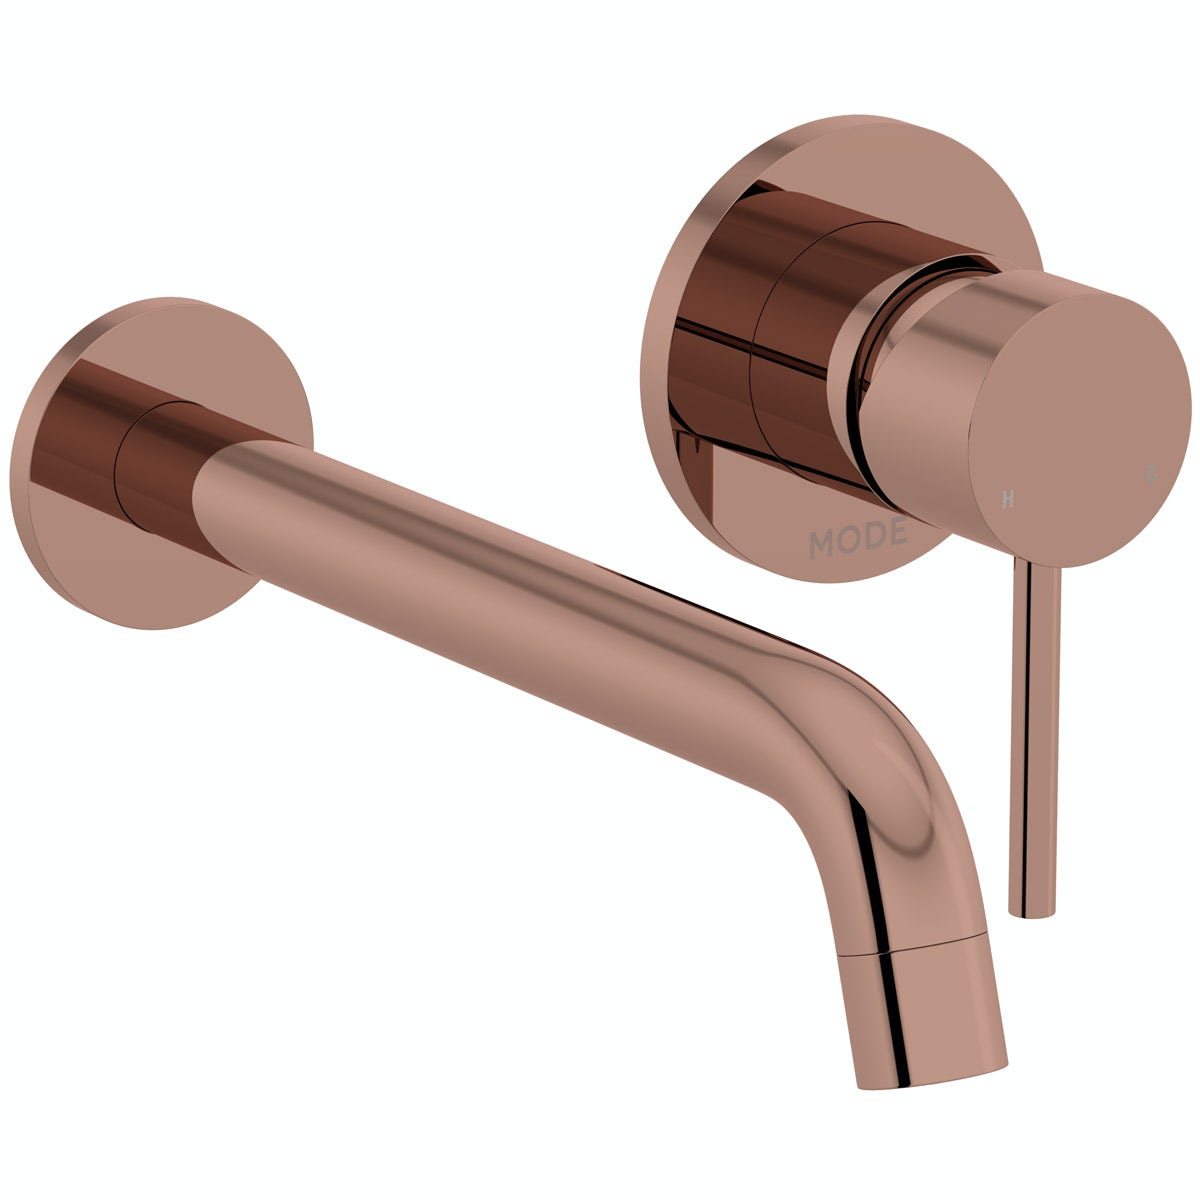 Mode Spencer round wall mounted rose gold basin mixer tap